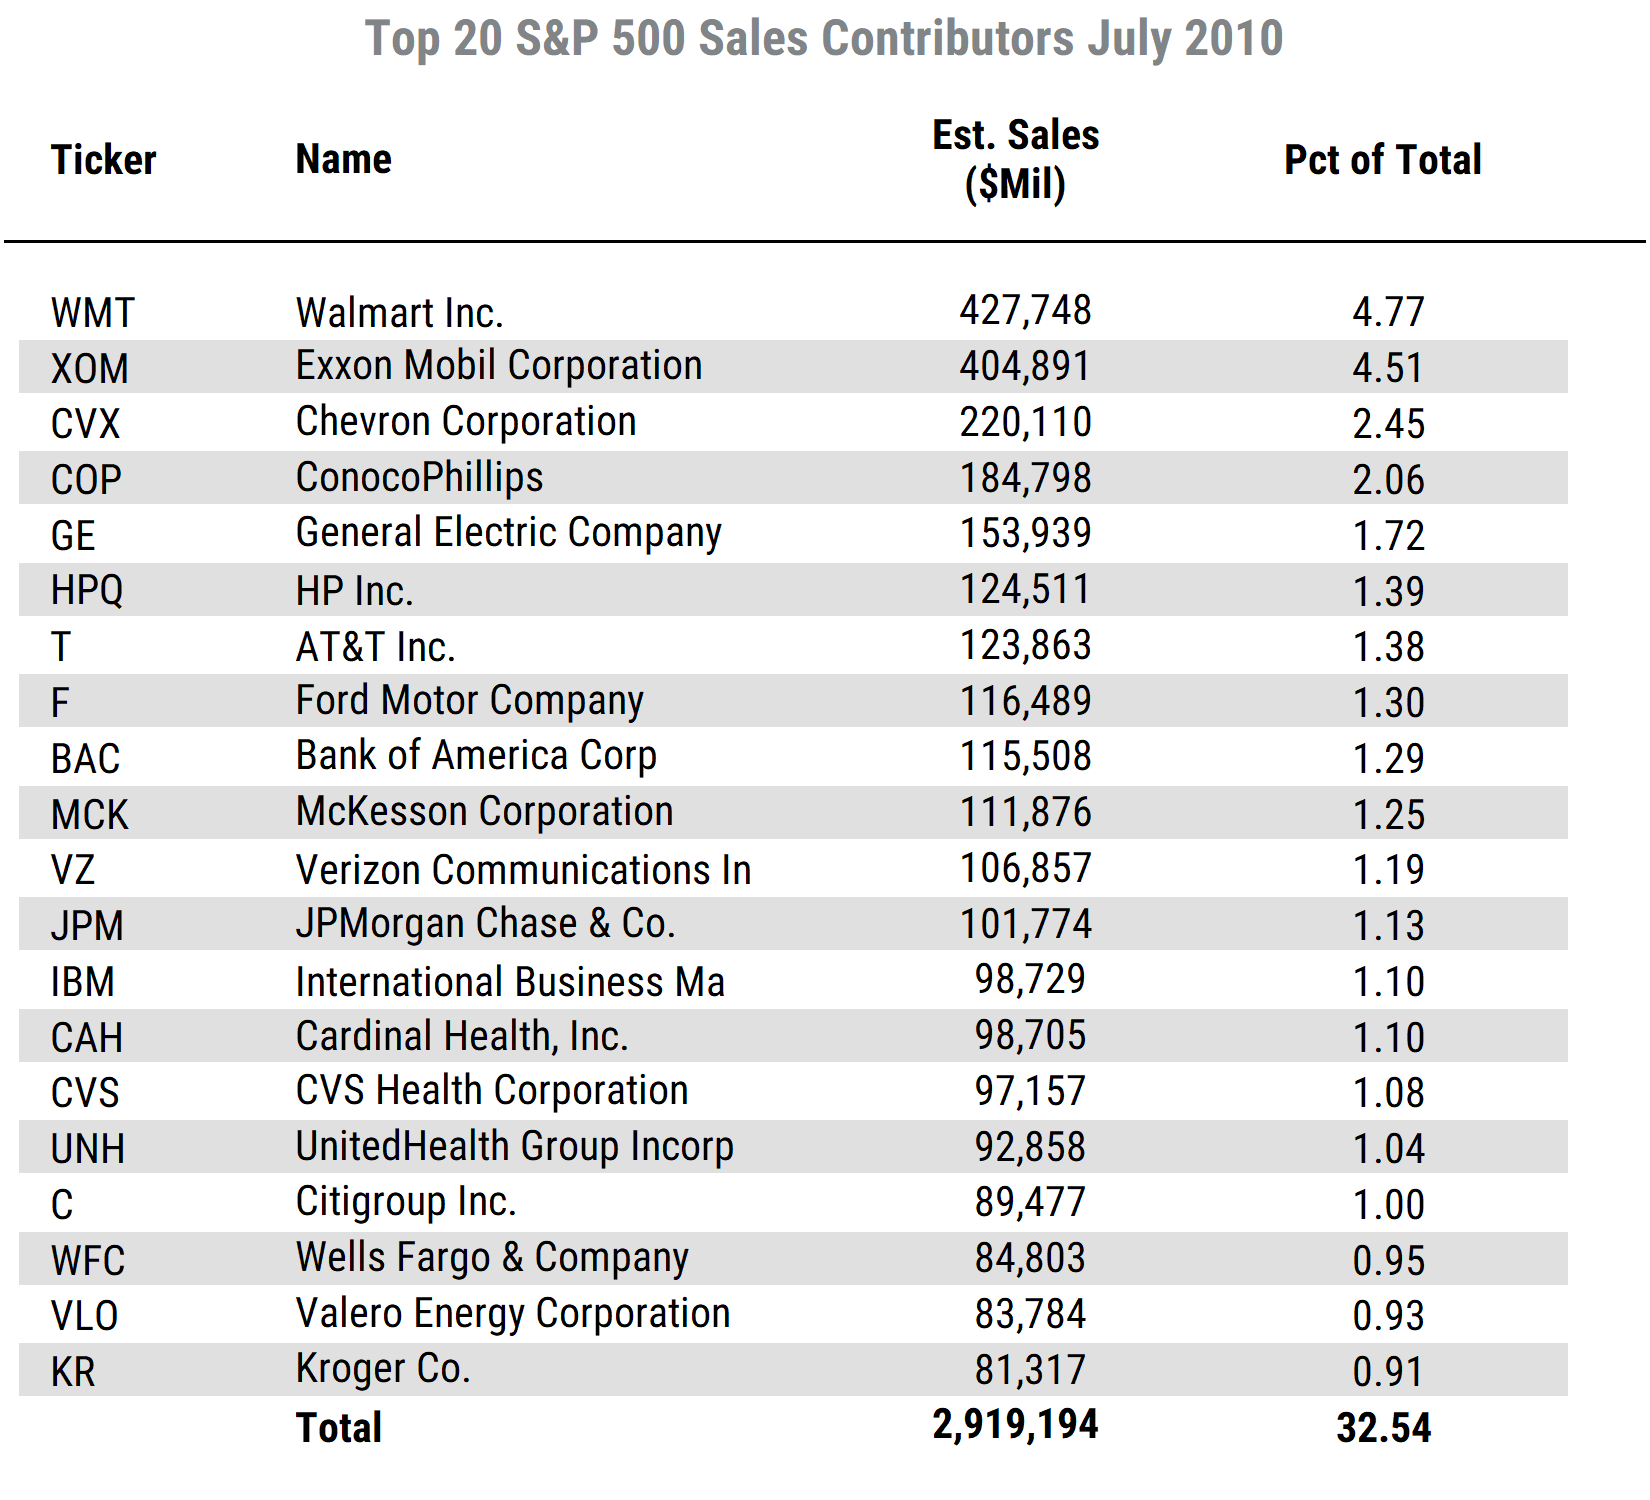 List of Top 20 SP500 Sales 10 yrs Ago